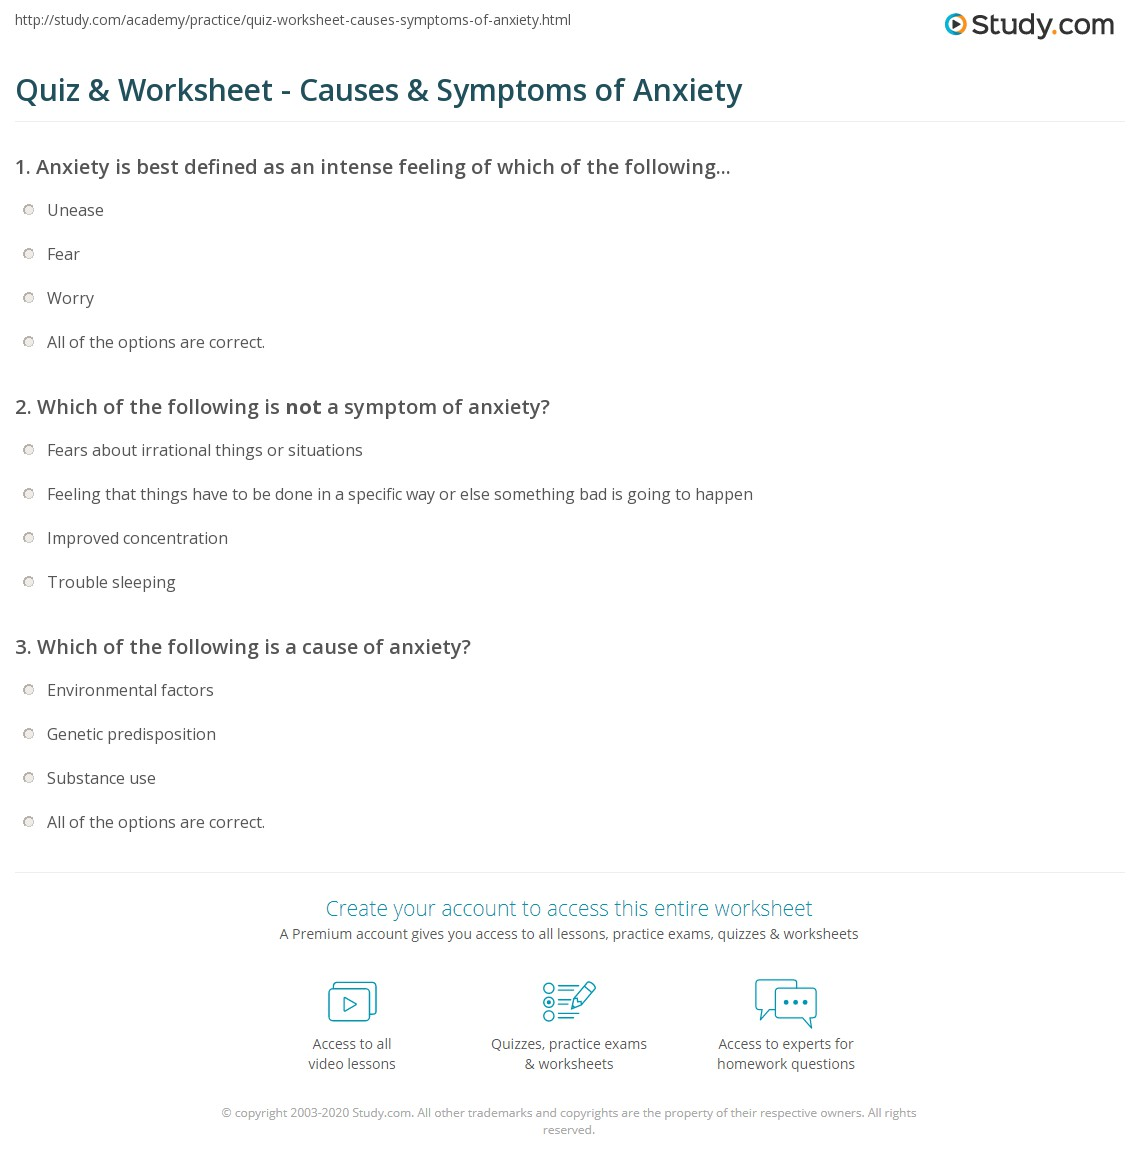 quiz & worksheet - causes & symptoms of anxiety | study